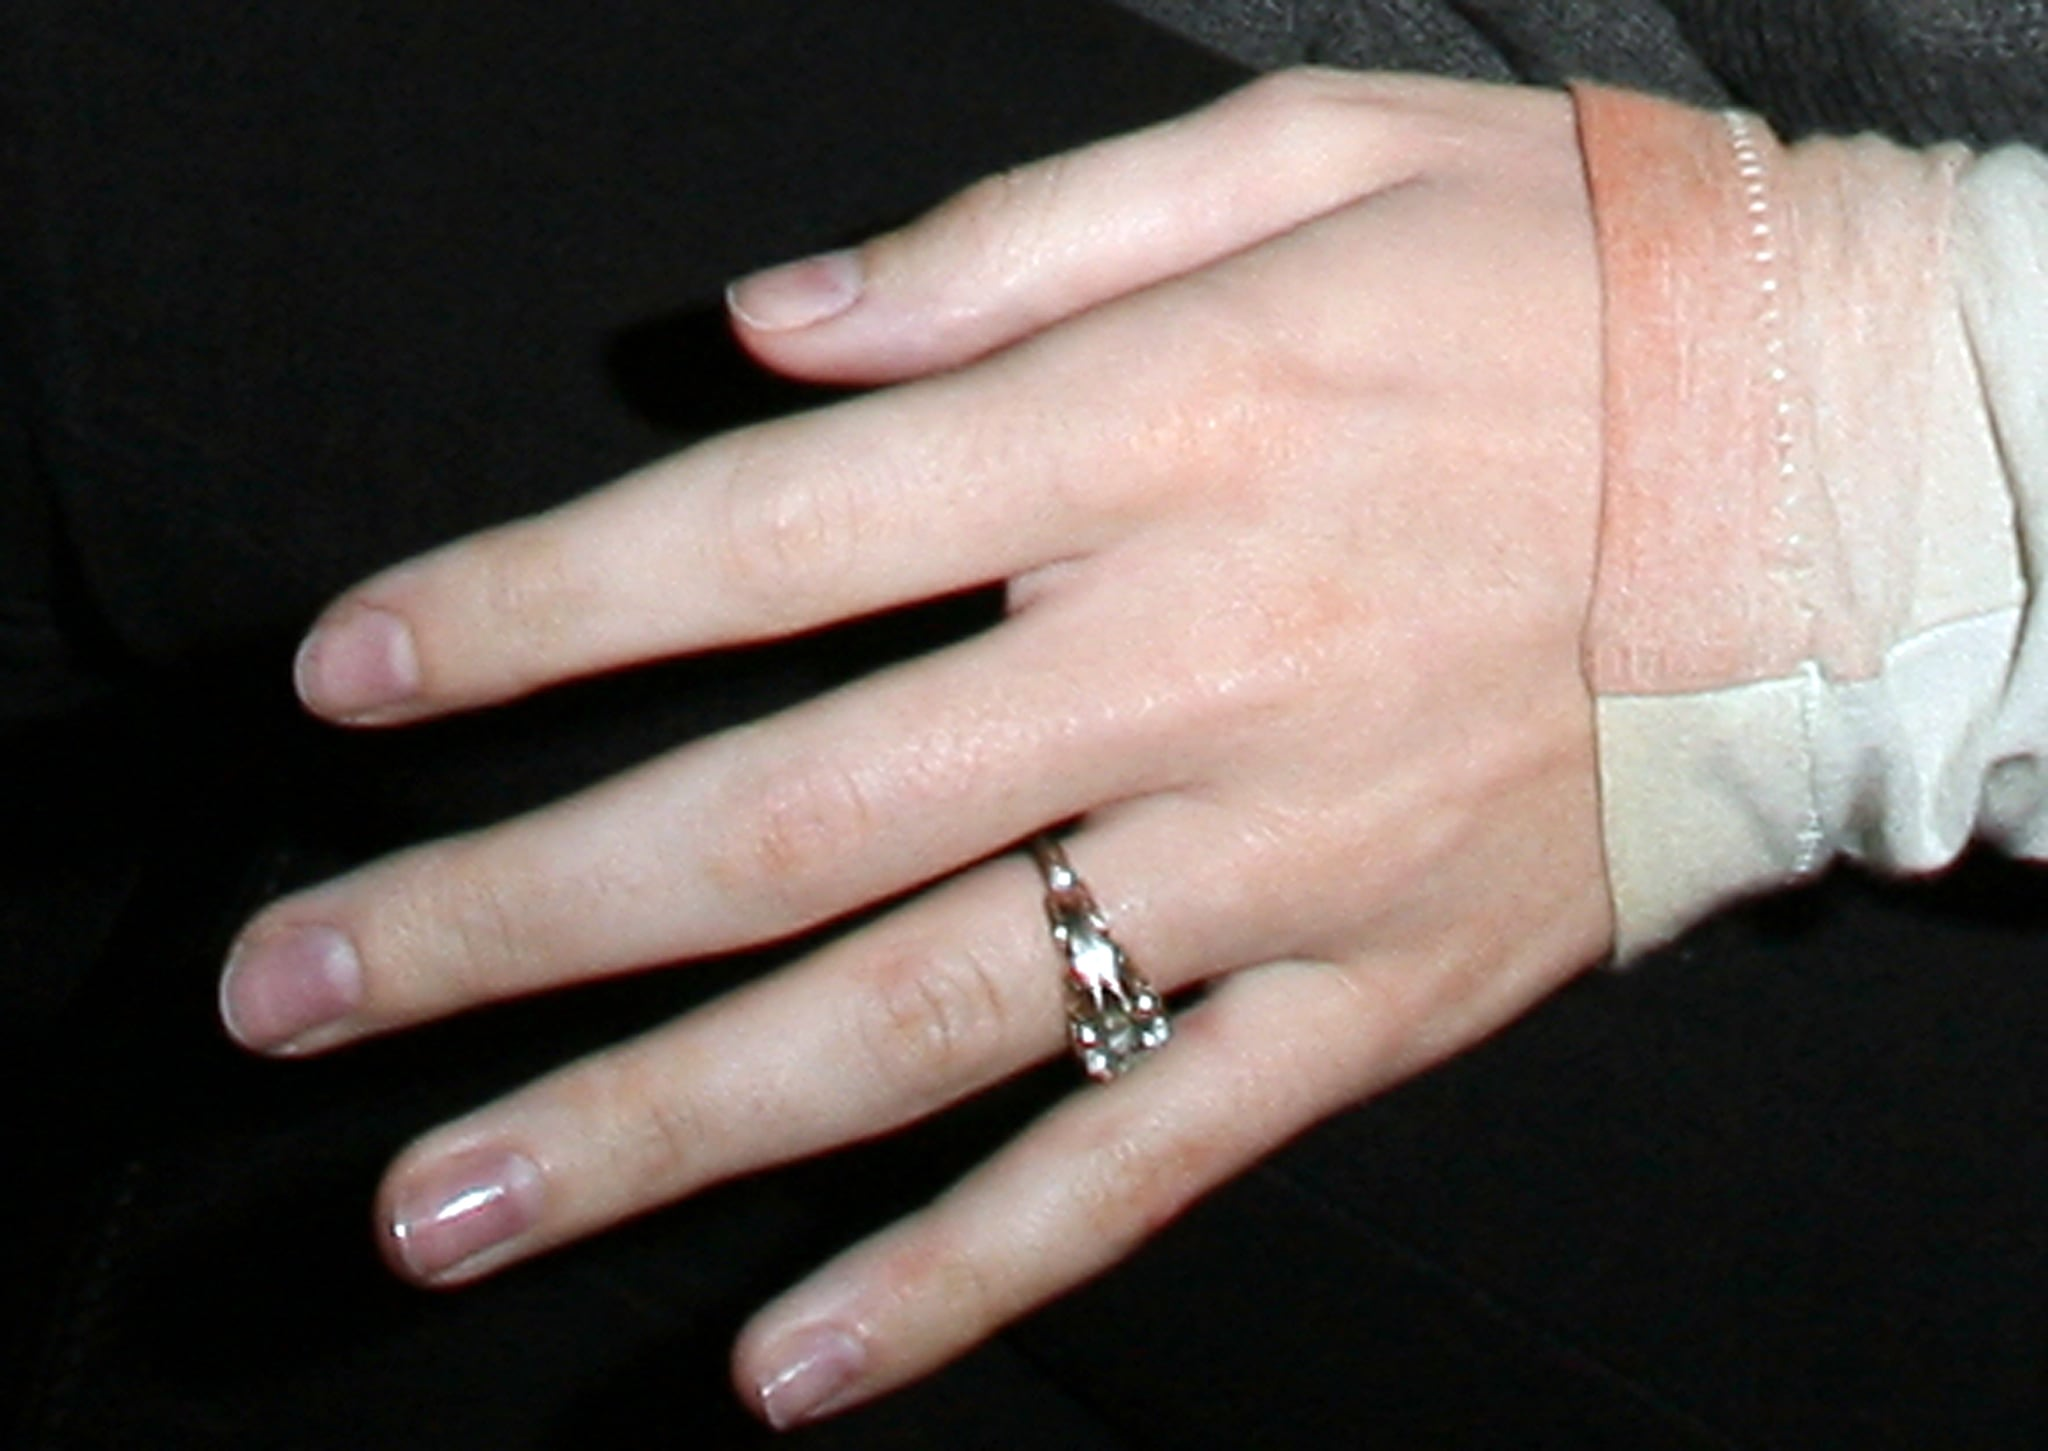 photos of katy perry s engagement ring from brand